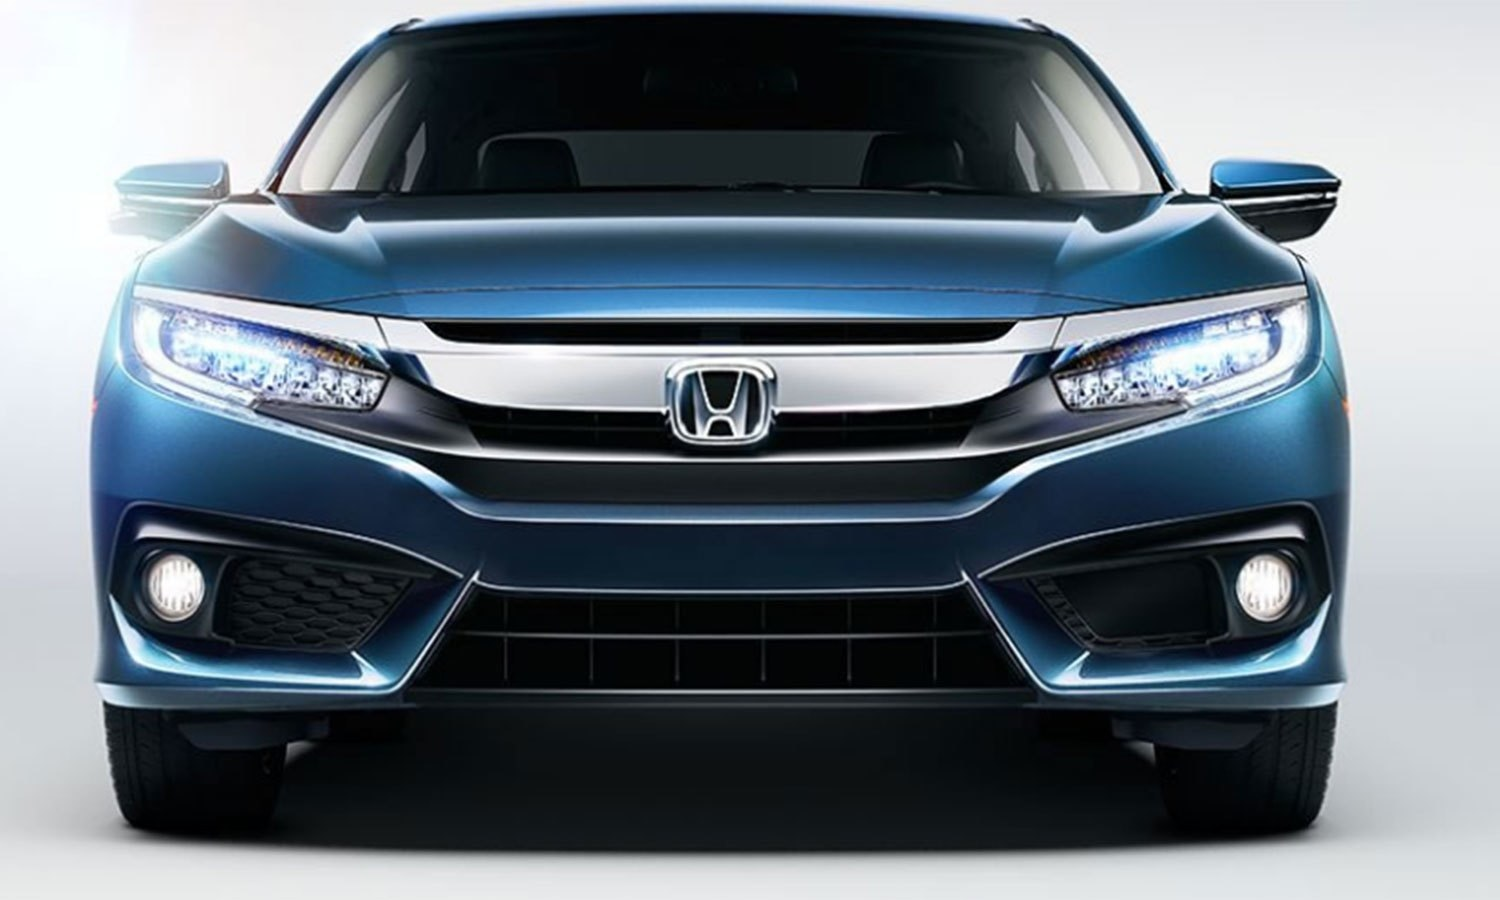 Where Is Honda Made >> With 150 000 Units Sold The Honda Civic Seems To Have Made Quite A